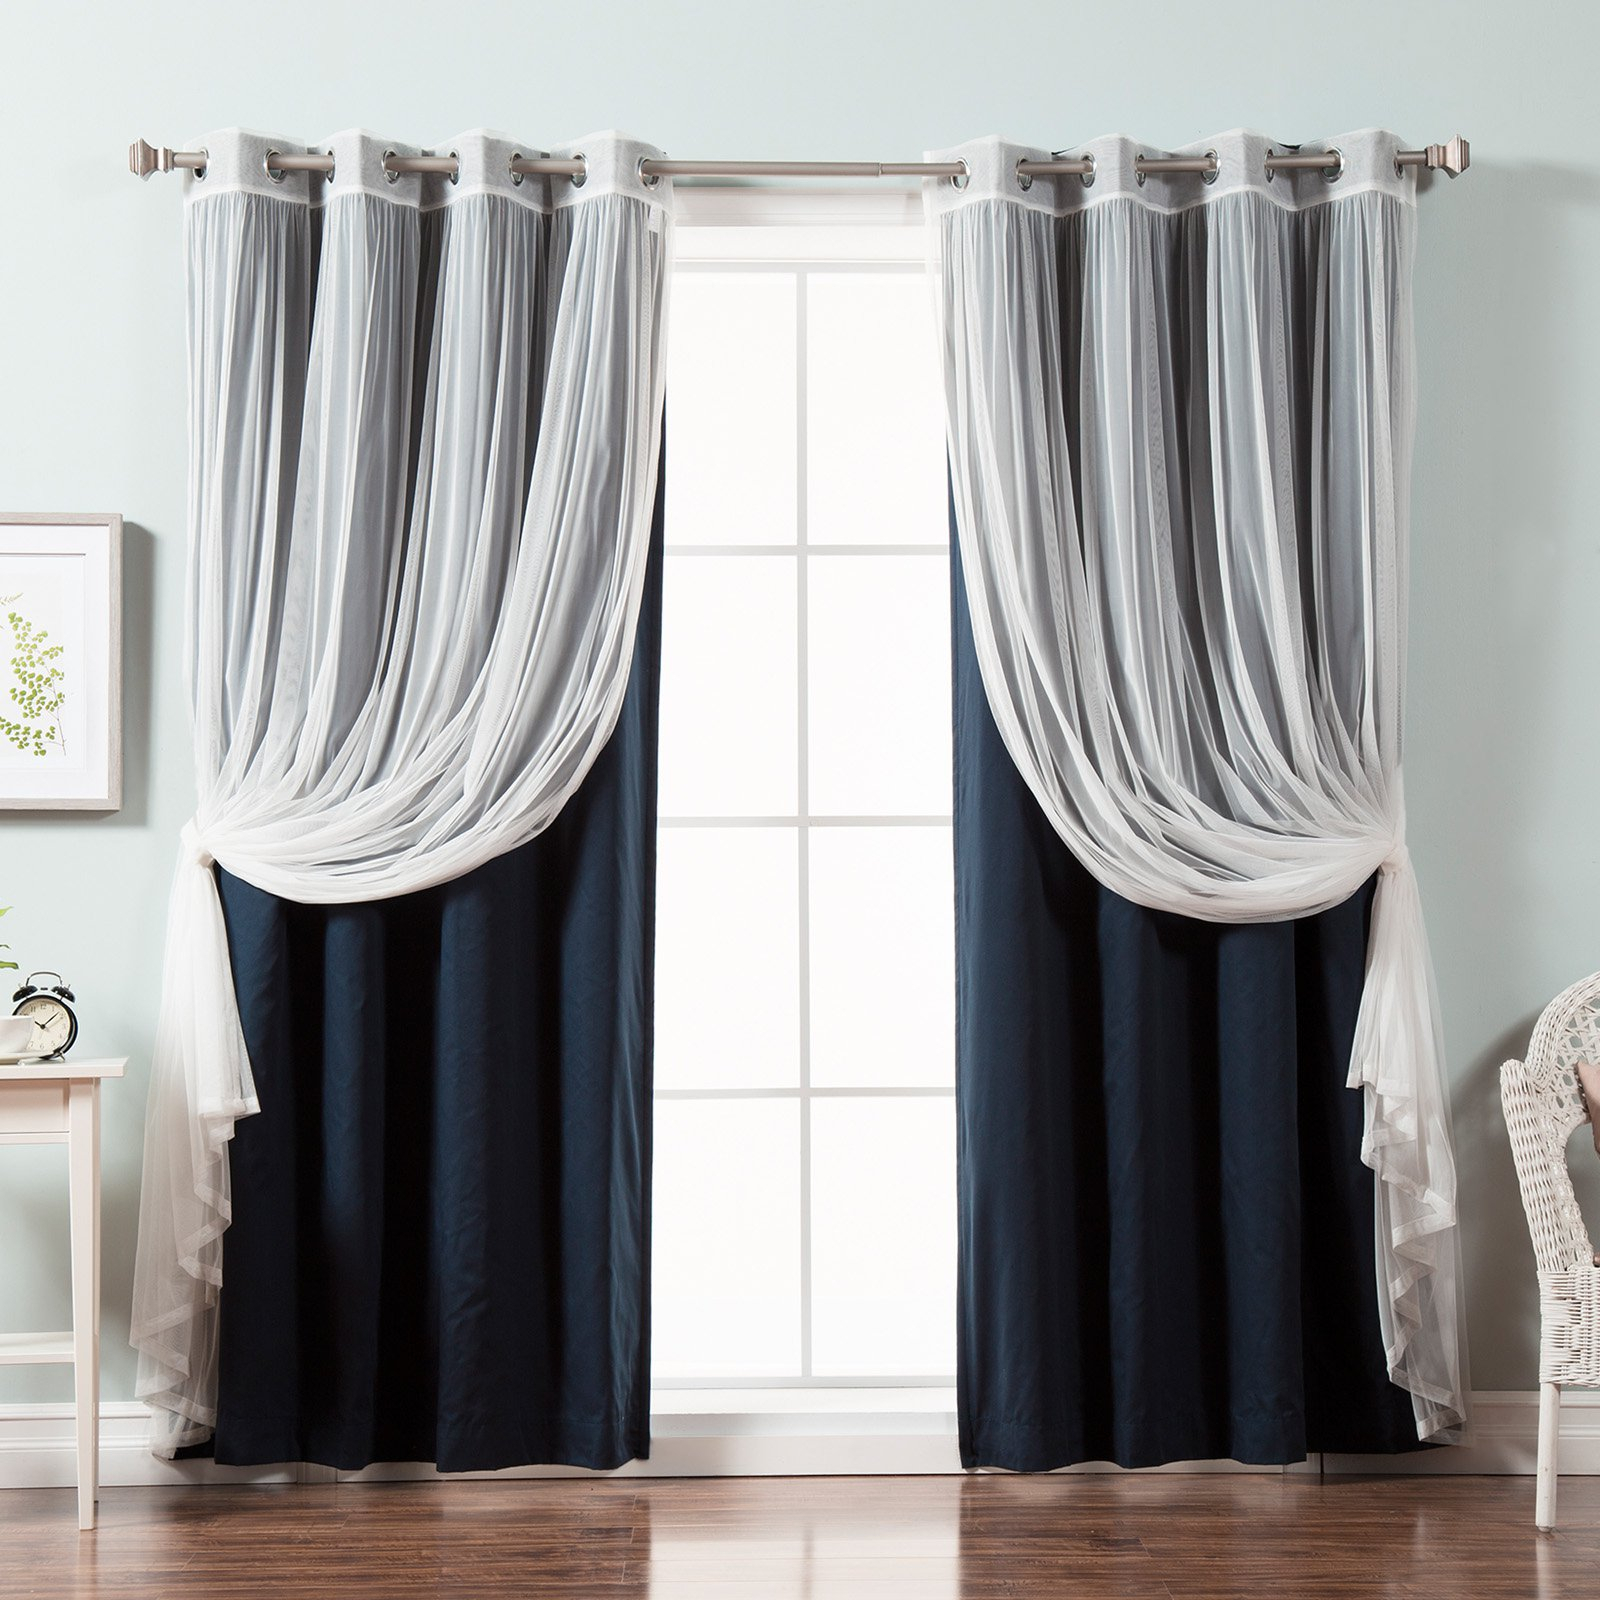 Best Home Fashion Tulle Lace And Solid Cotton Blackout Mix & Match Curtain Panels – Set Of 4 Intended For Solid Cotton Curtain Panels (View 10 of 30)